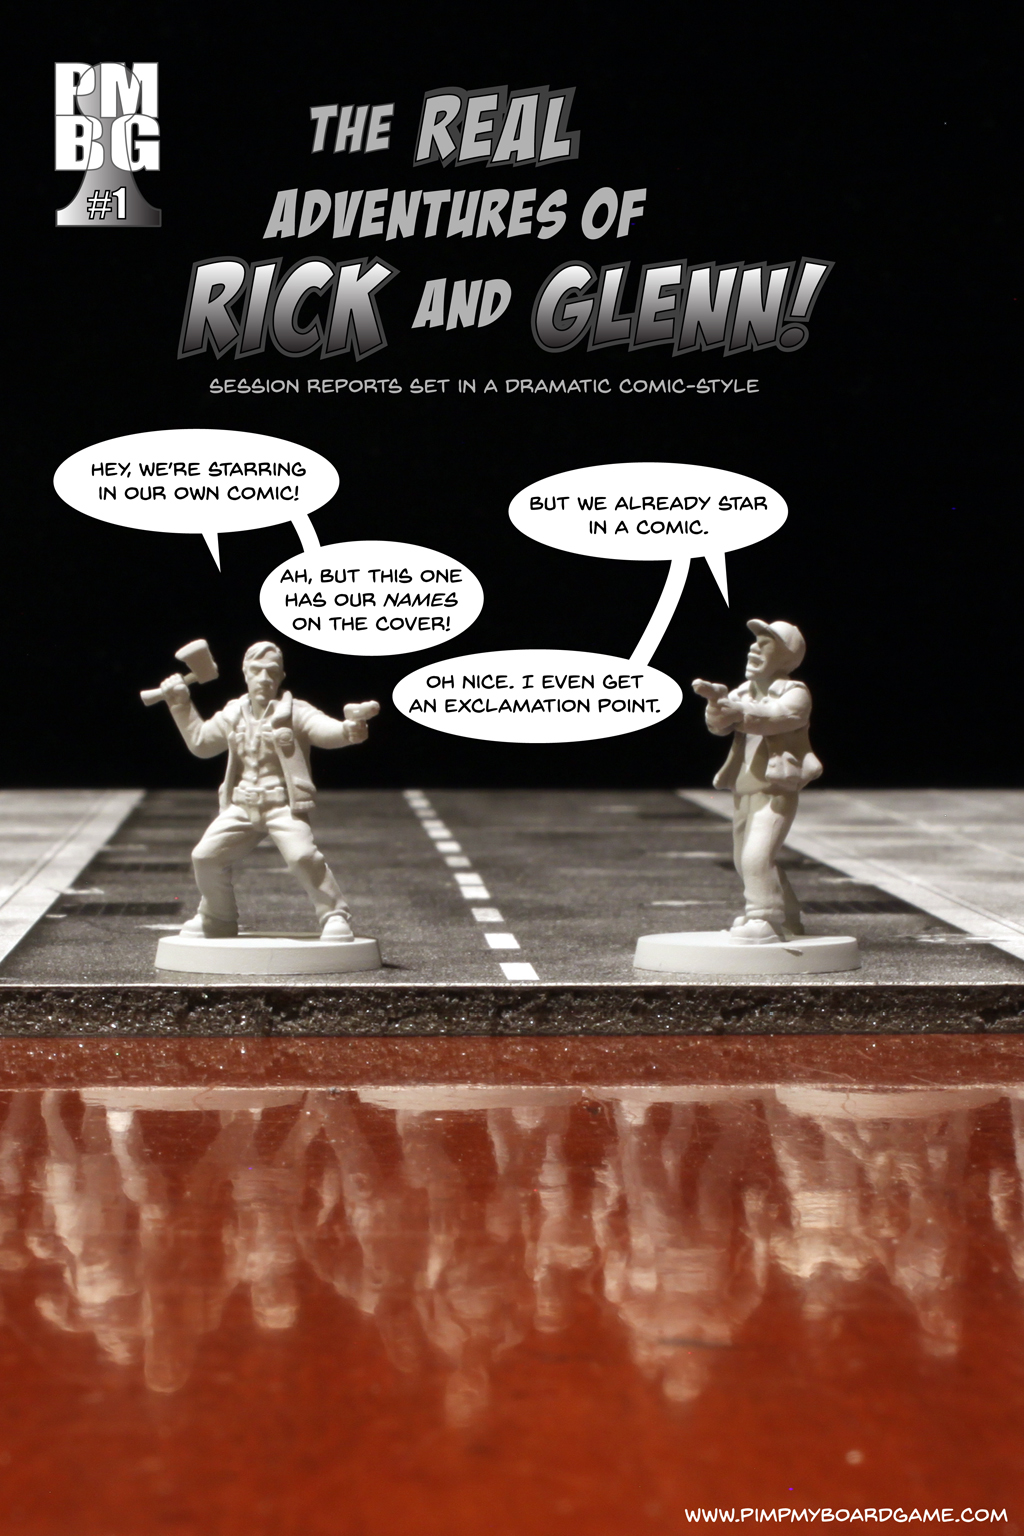 The Real Adventures of Rick and Glenn! Chapter 1 - cover